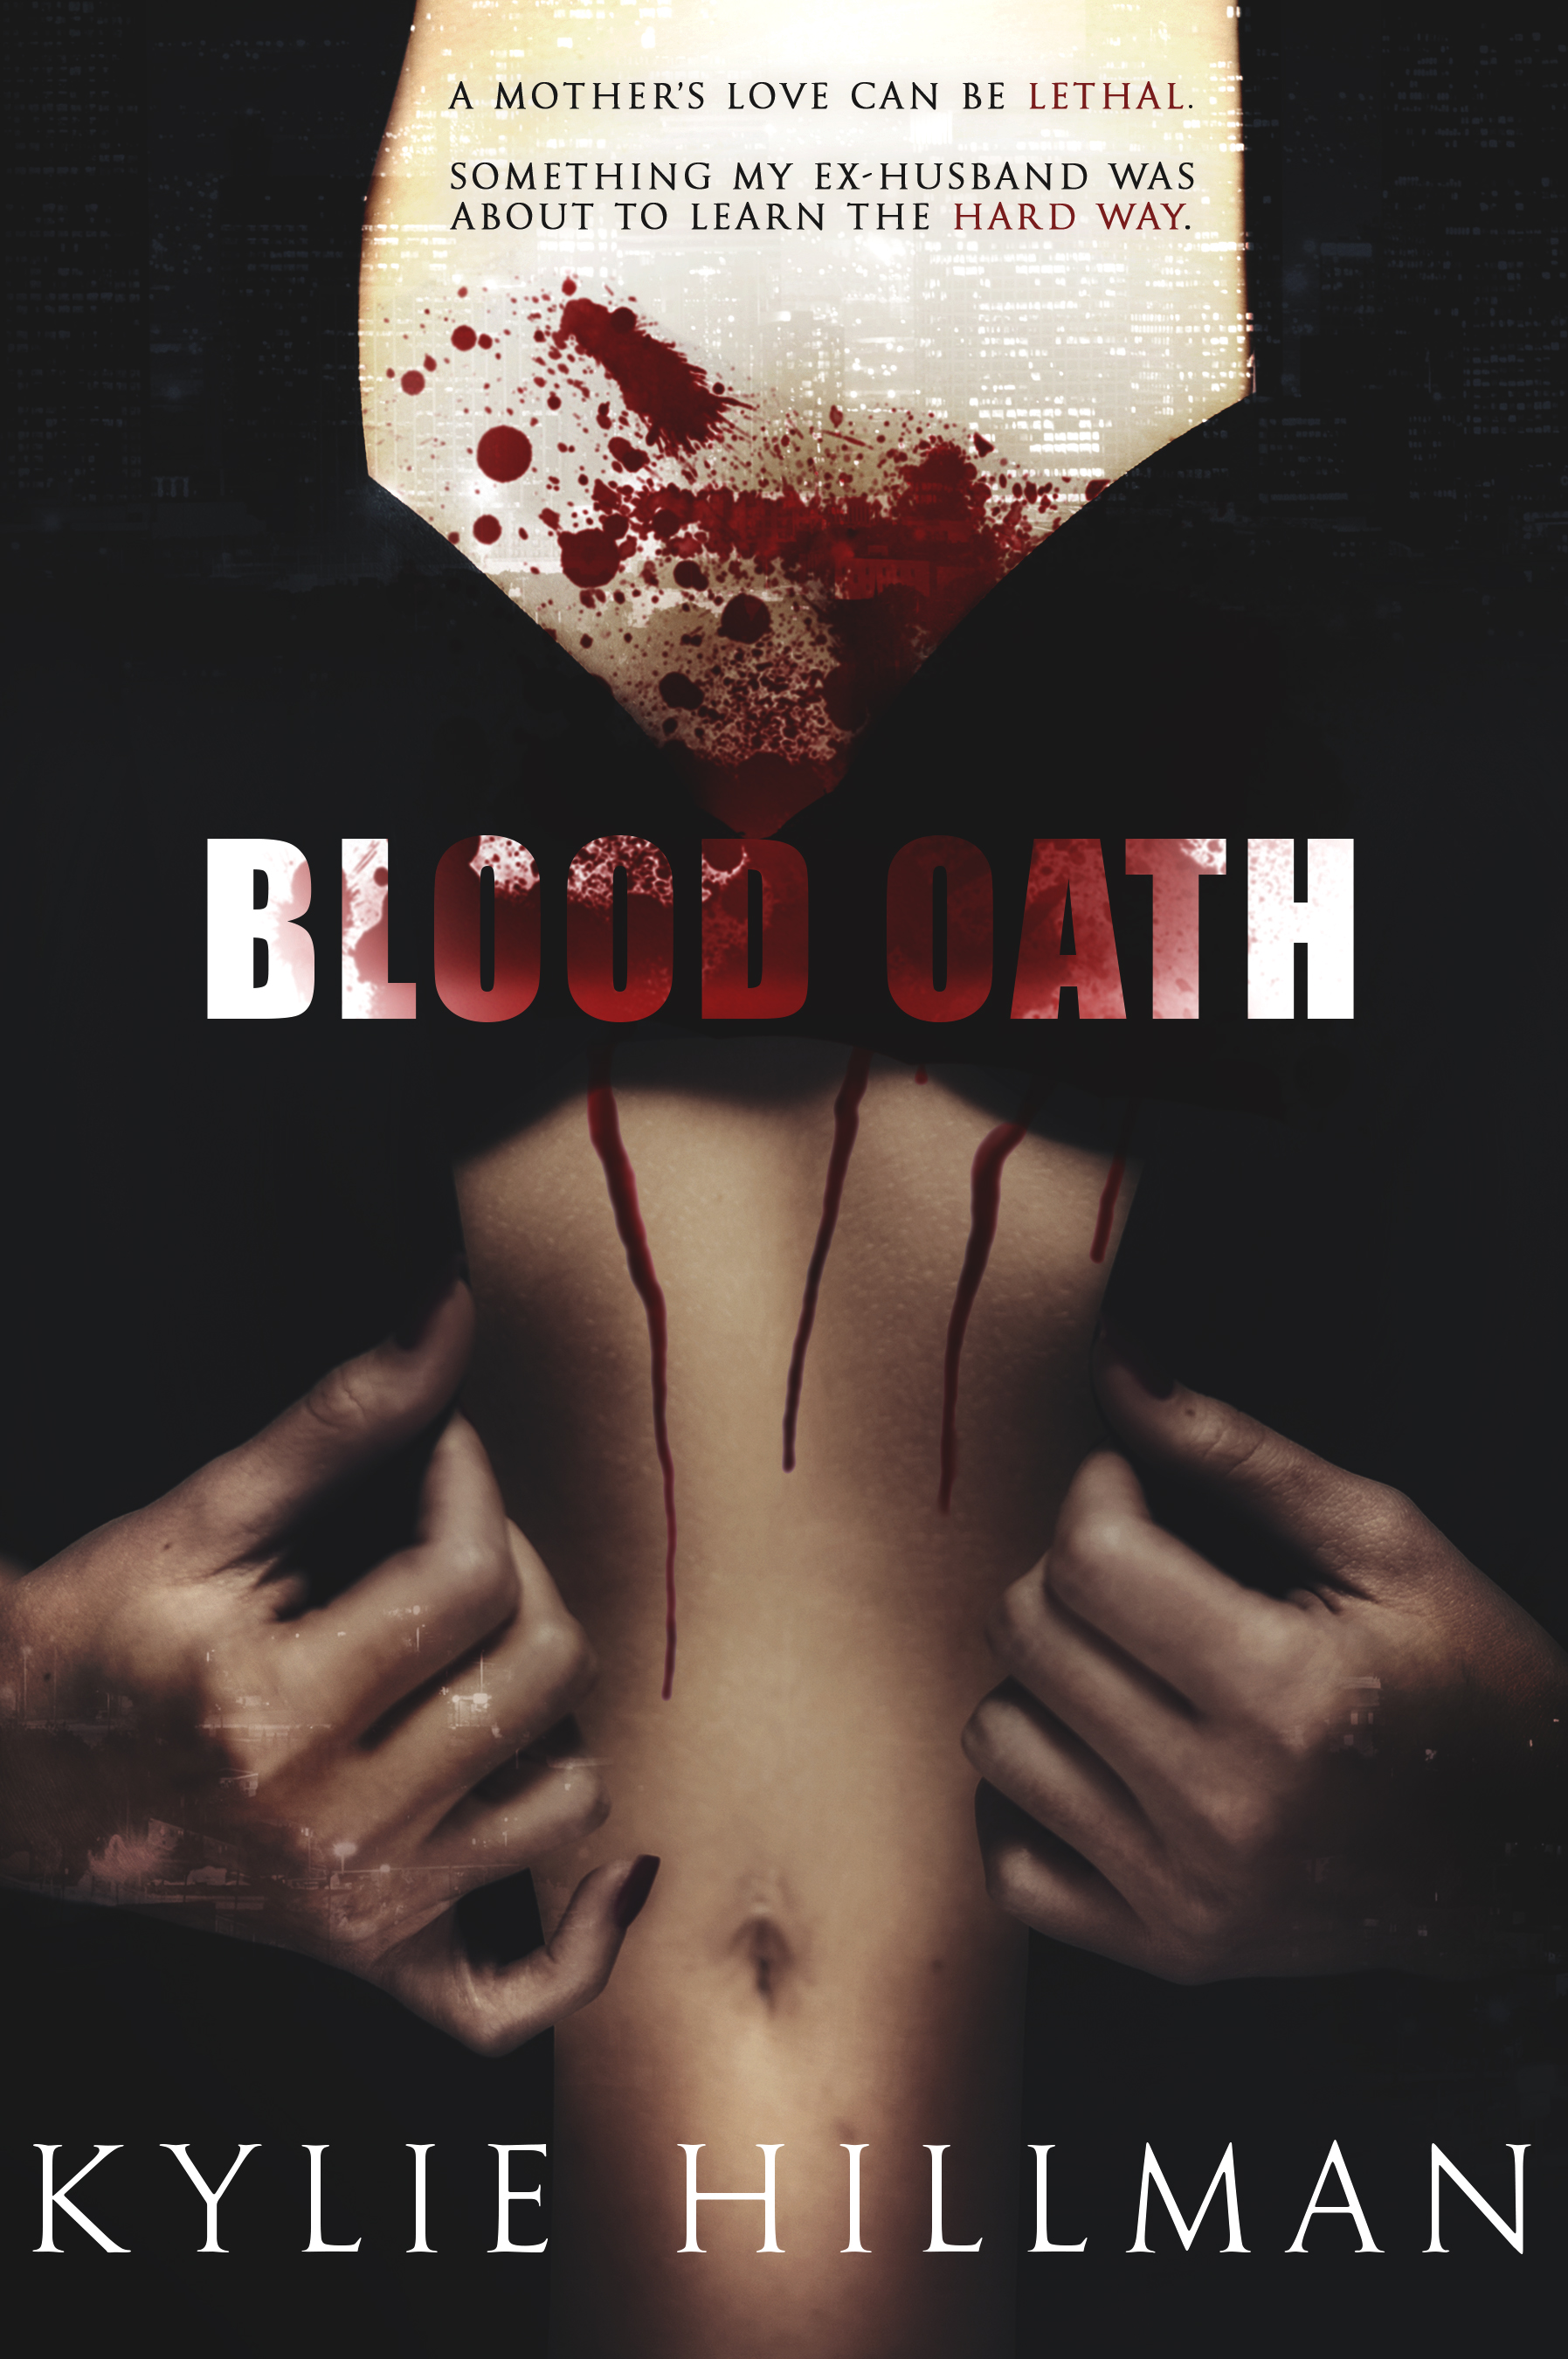 Blood Oath by Kylie Hillman